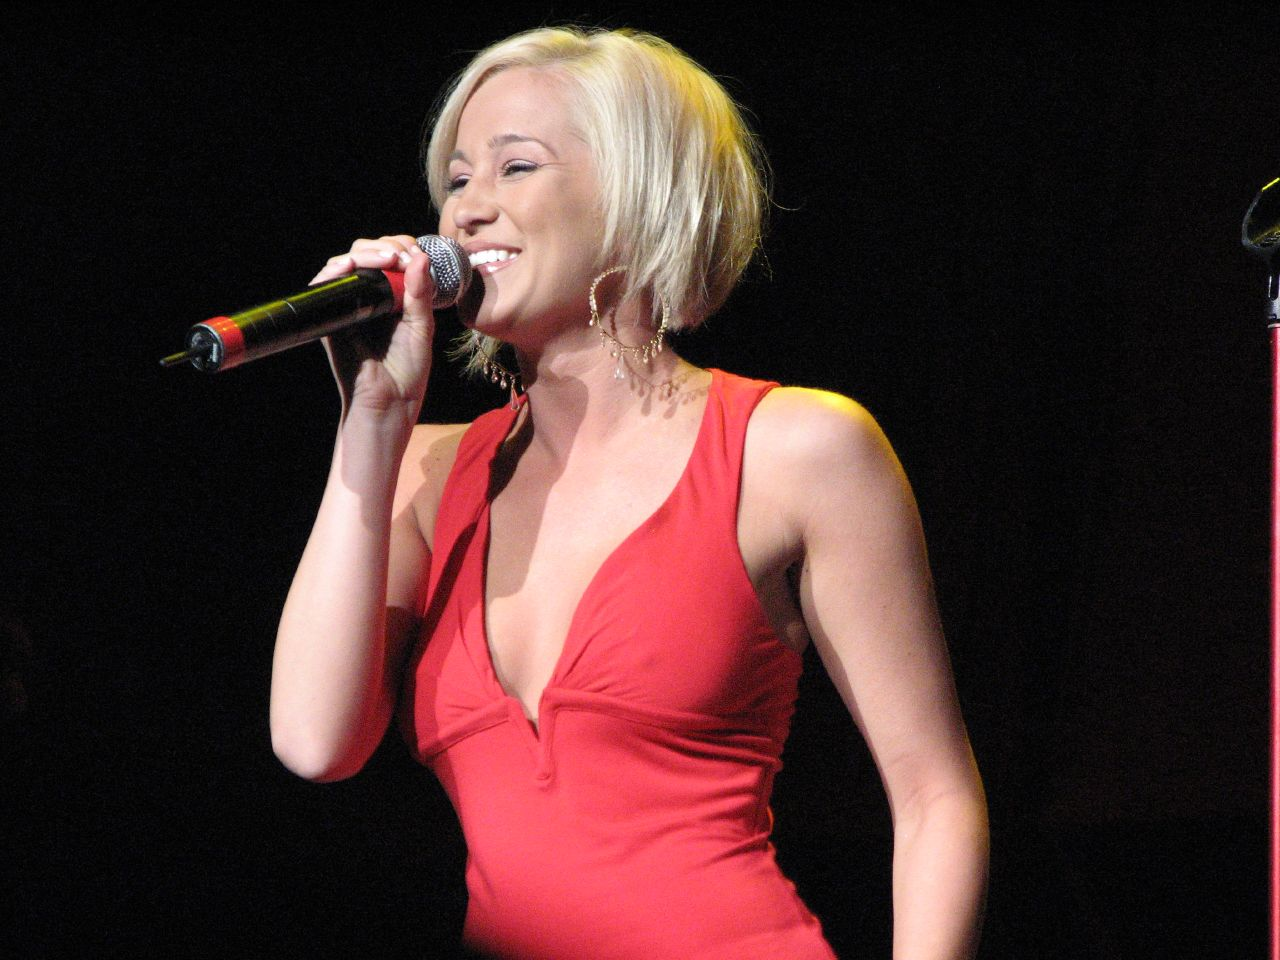 File:KELLIE PICKLER 01.jpg - Wikimedia Commons